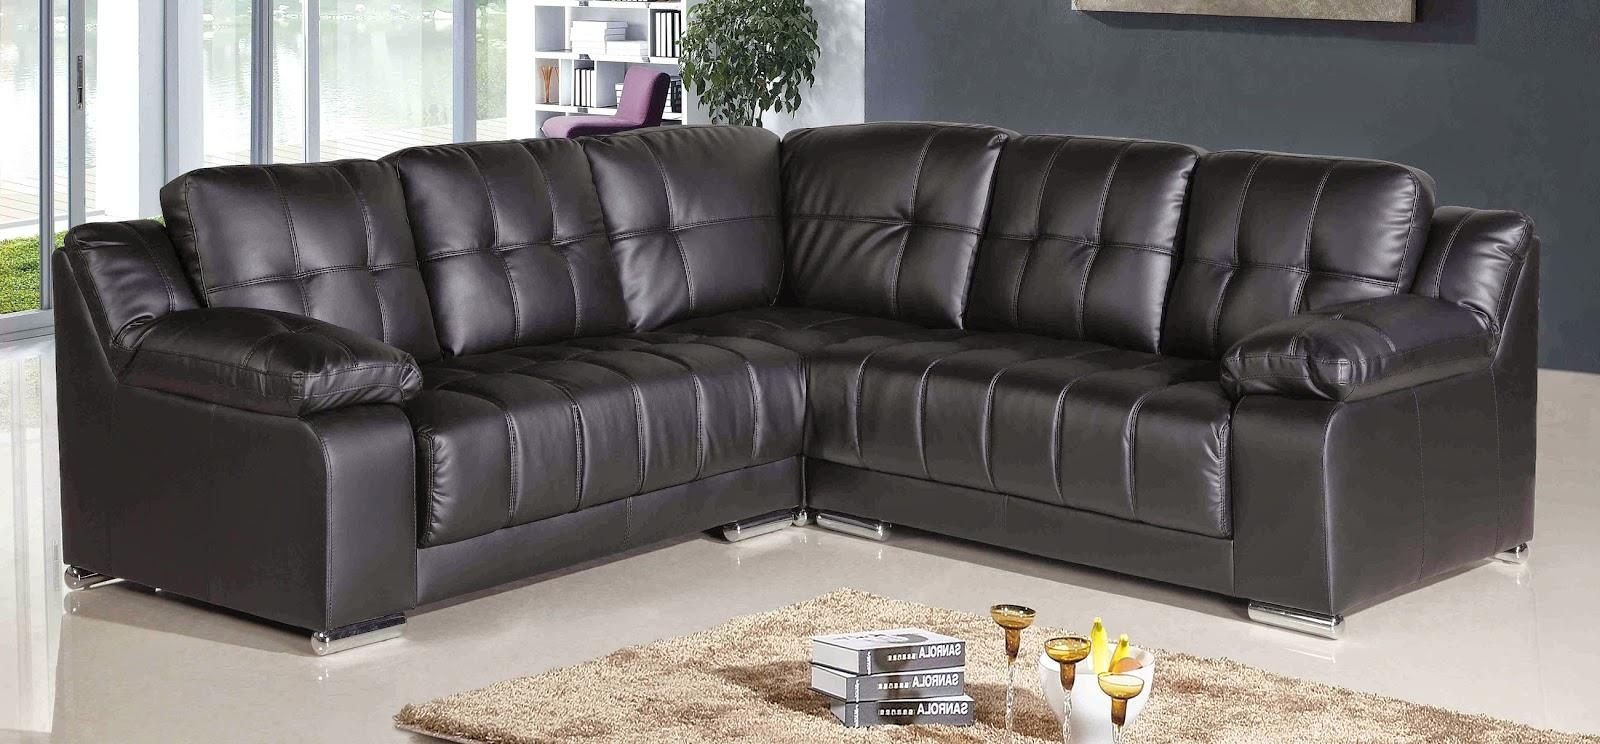 cheap corner sofas on finance havertys parker sectional sofa 20 photos bed | ideas